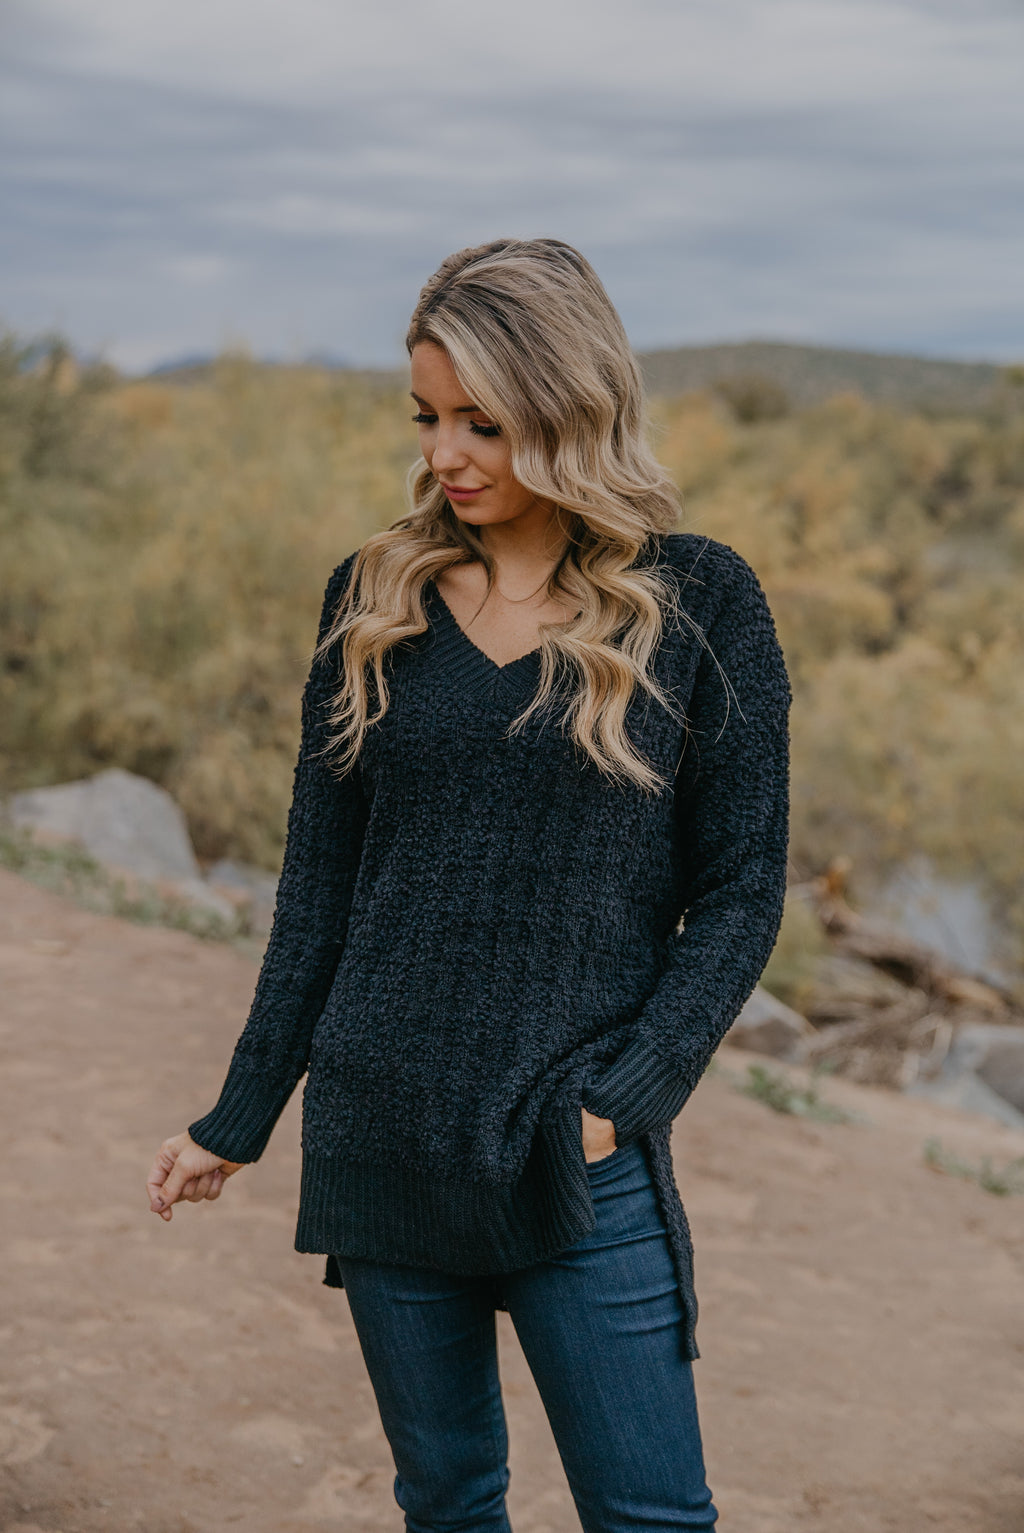 WI Basics: The Orya V-Neck Sweater in Black (Sizes S-3X)